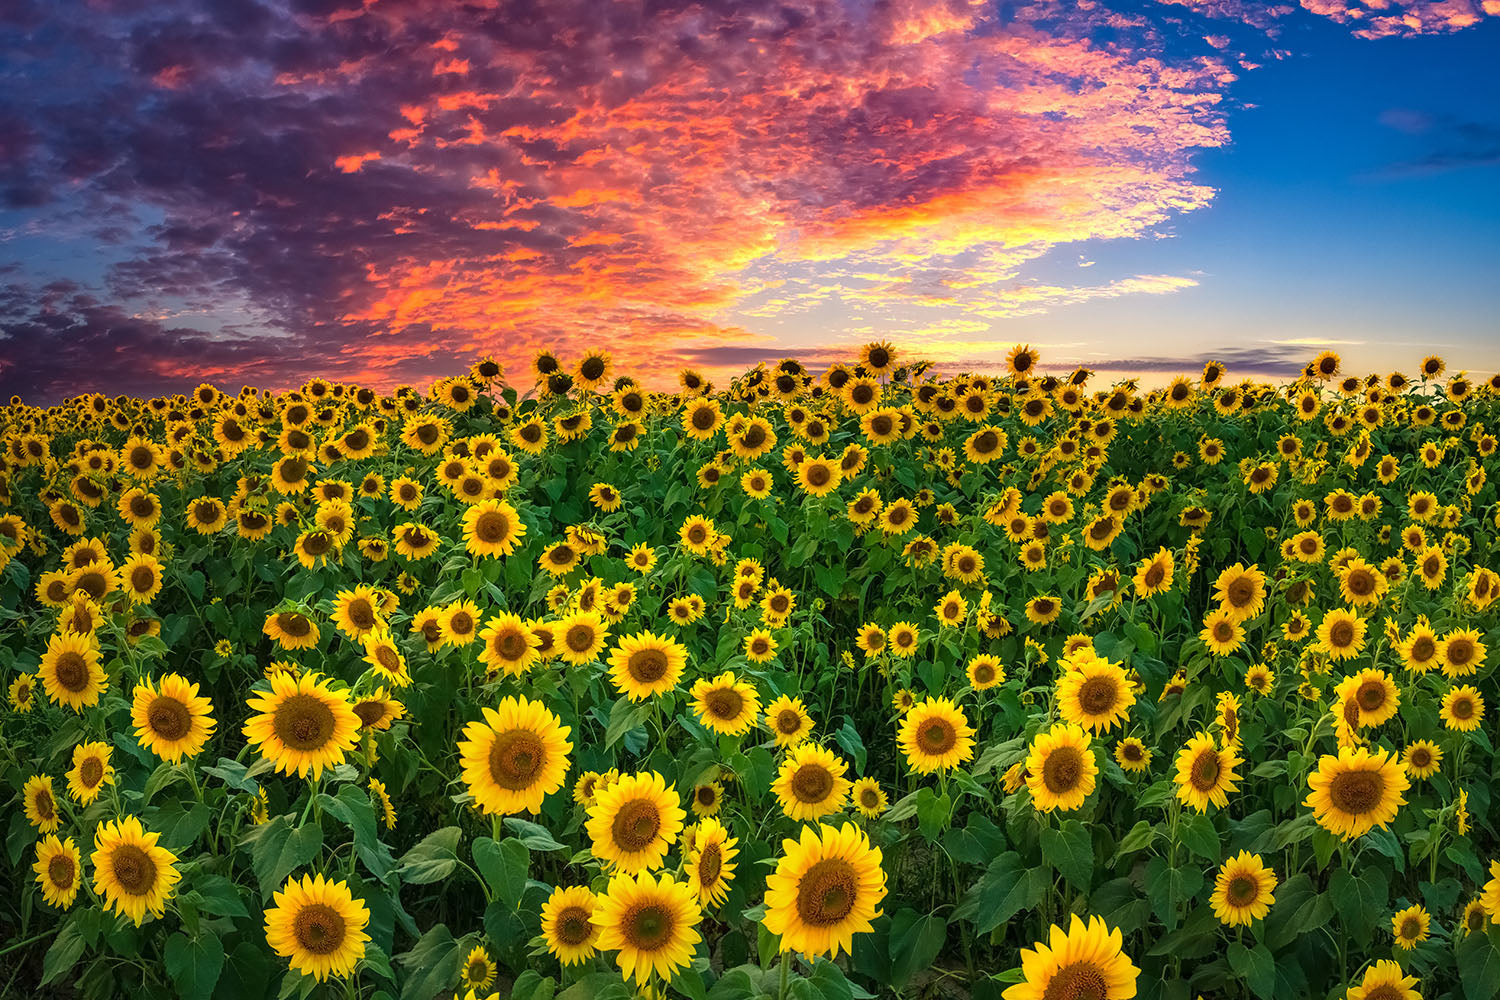 Landscape photo of the Colby Farm sunflowers at sunset - Newbury, Massachusetts